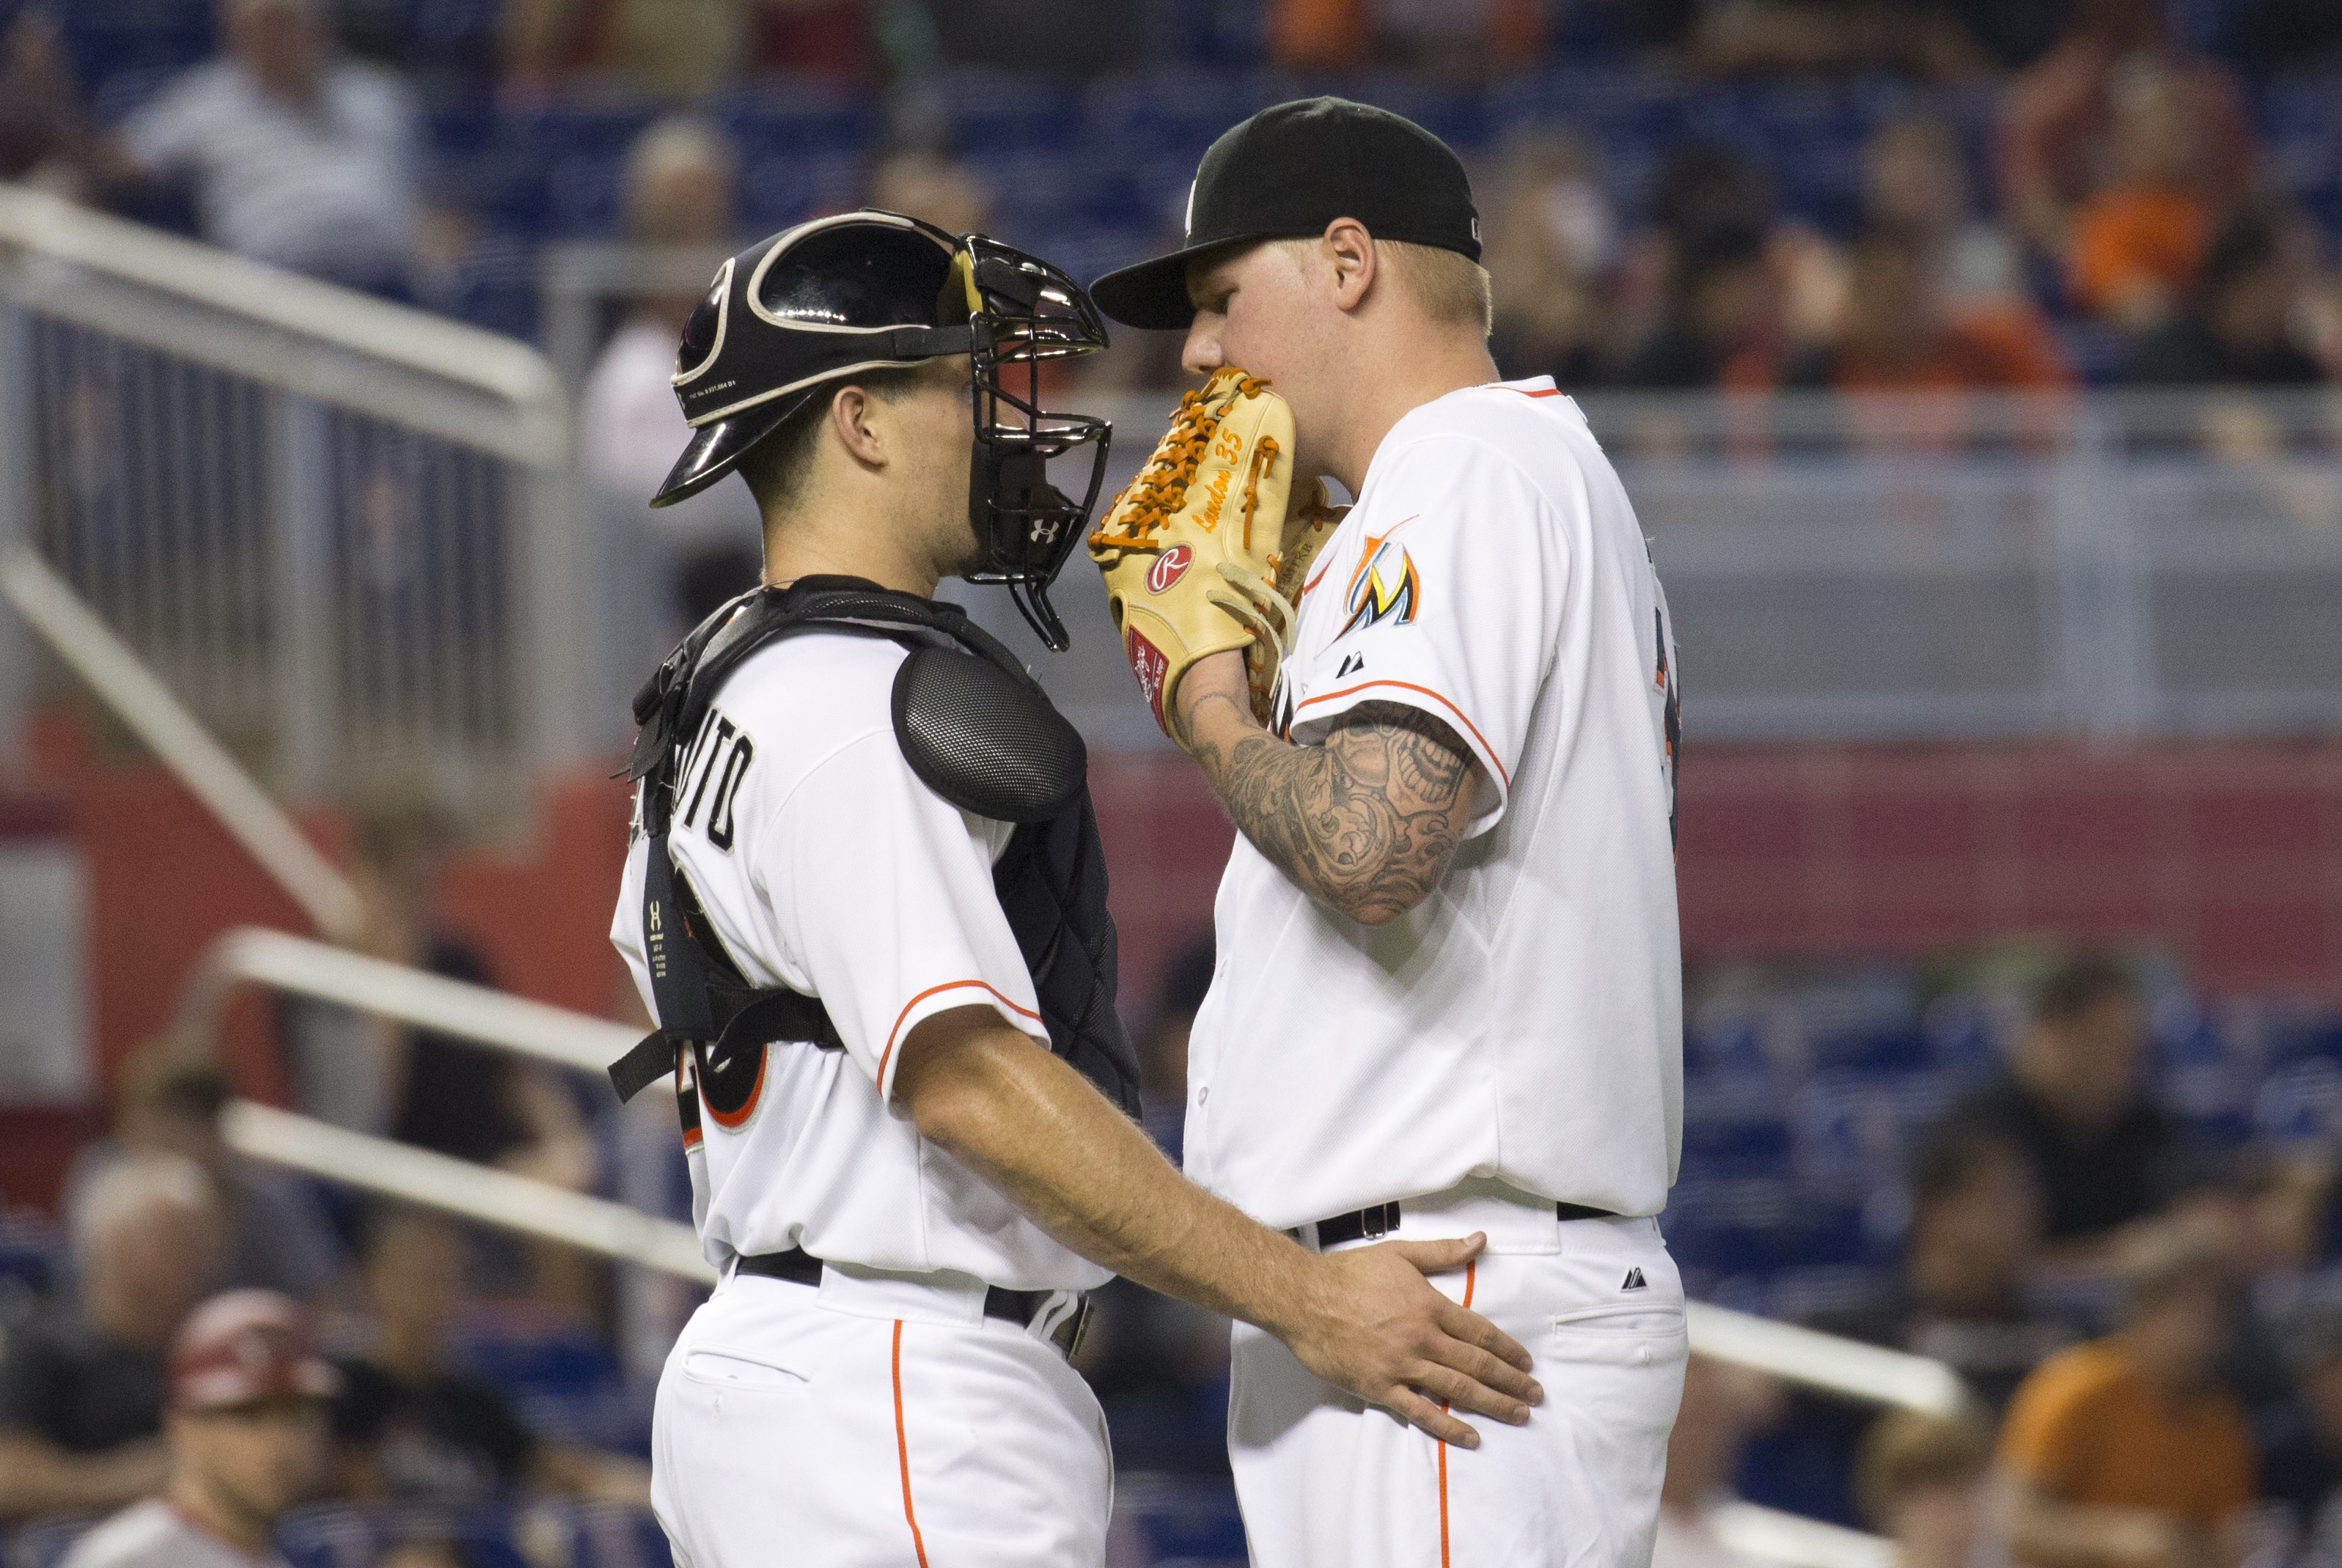 Miami Marlins catcher J.T. Realmuto (20) and Miami Marlins starting pitcher Mat Latos (35) have a mound conference during the fifth inning of a baseball game in Miami against the Arizona Diamondbacks, Thursday, May 21, 2015. The Diamondbacks won 7-6, swee